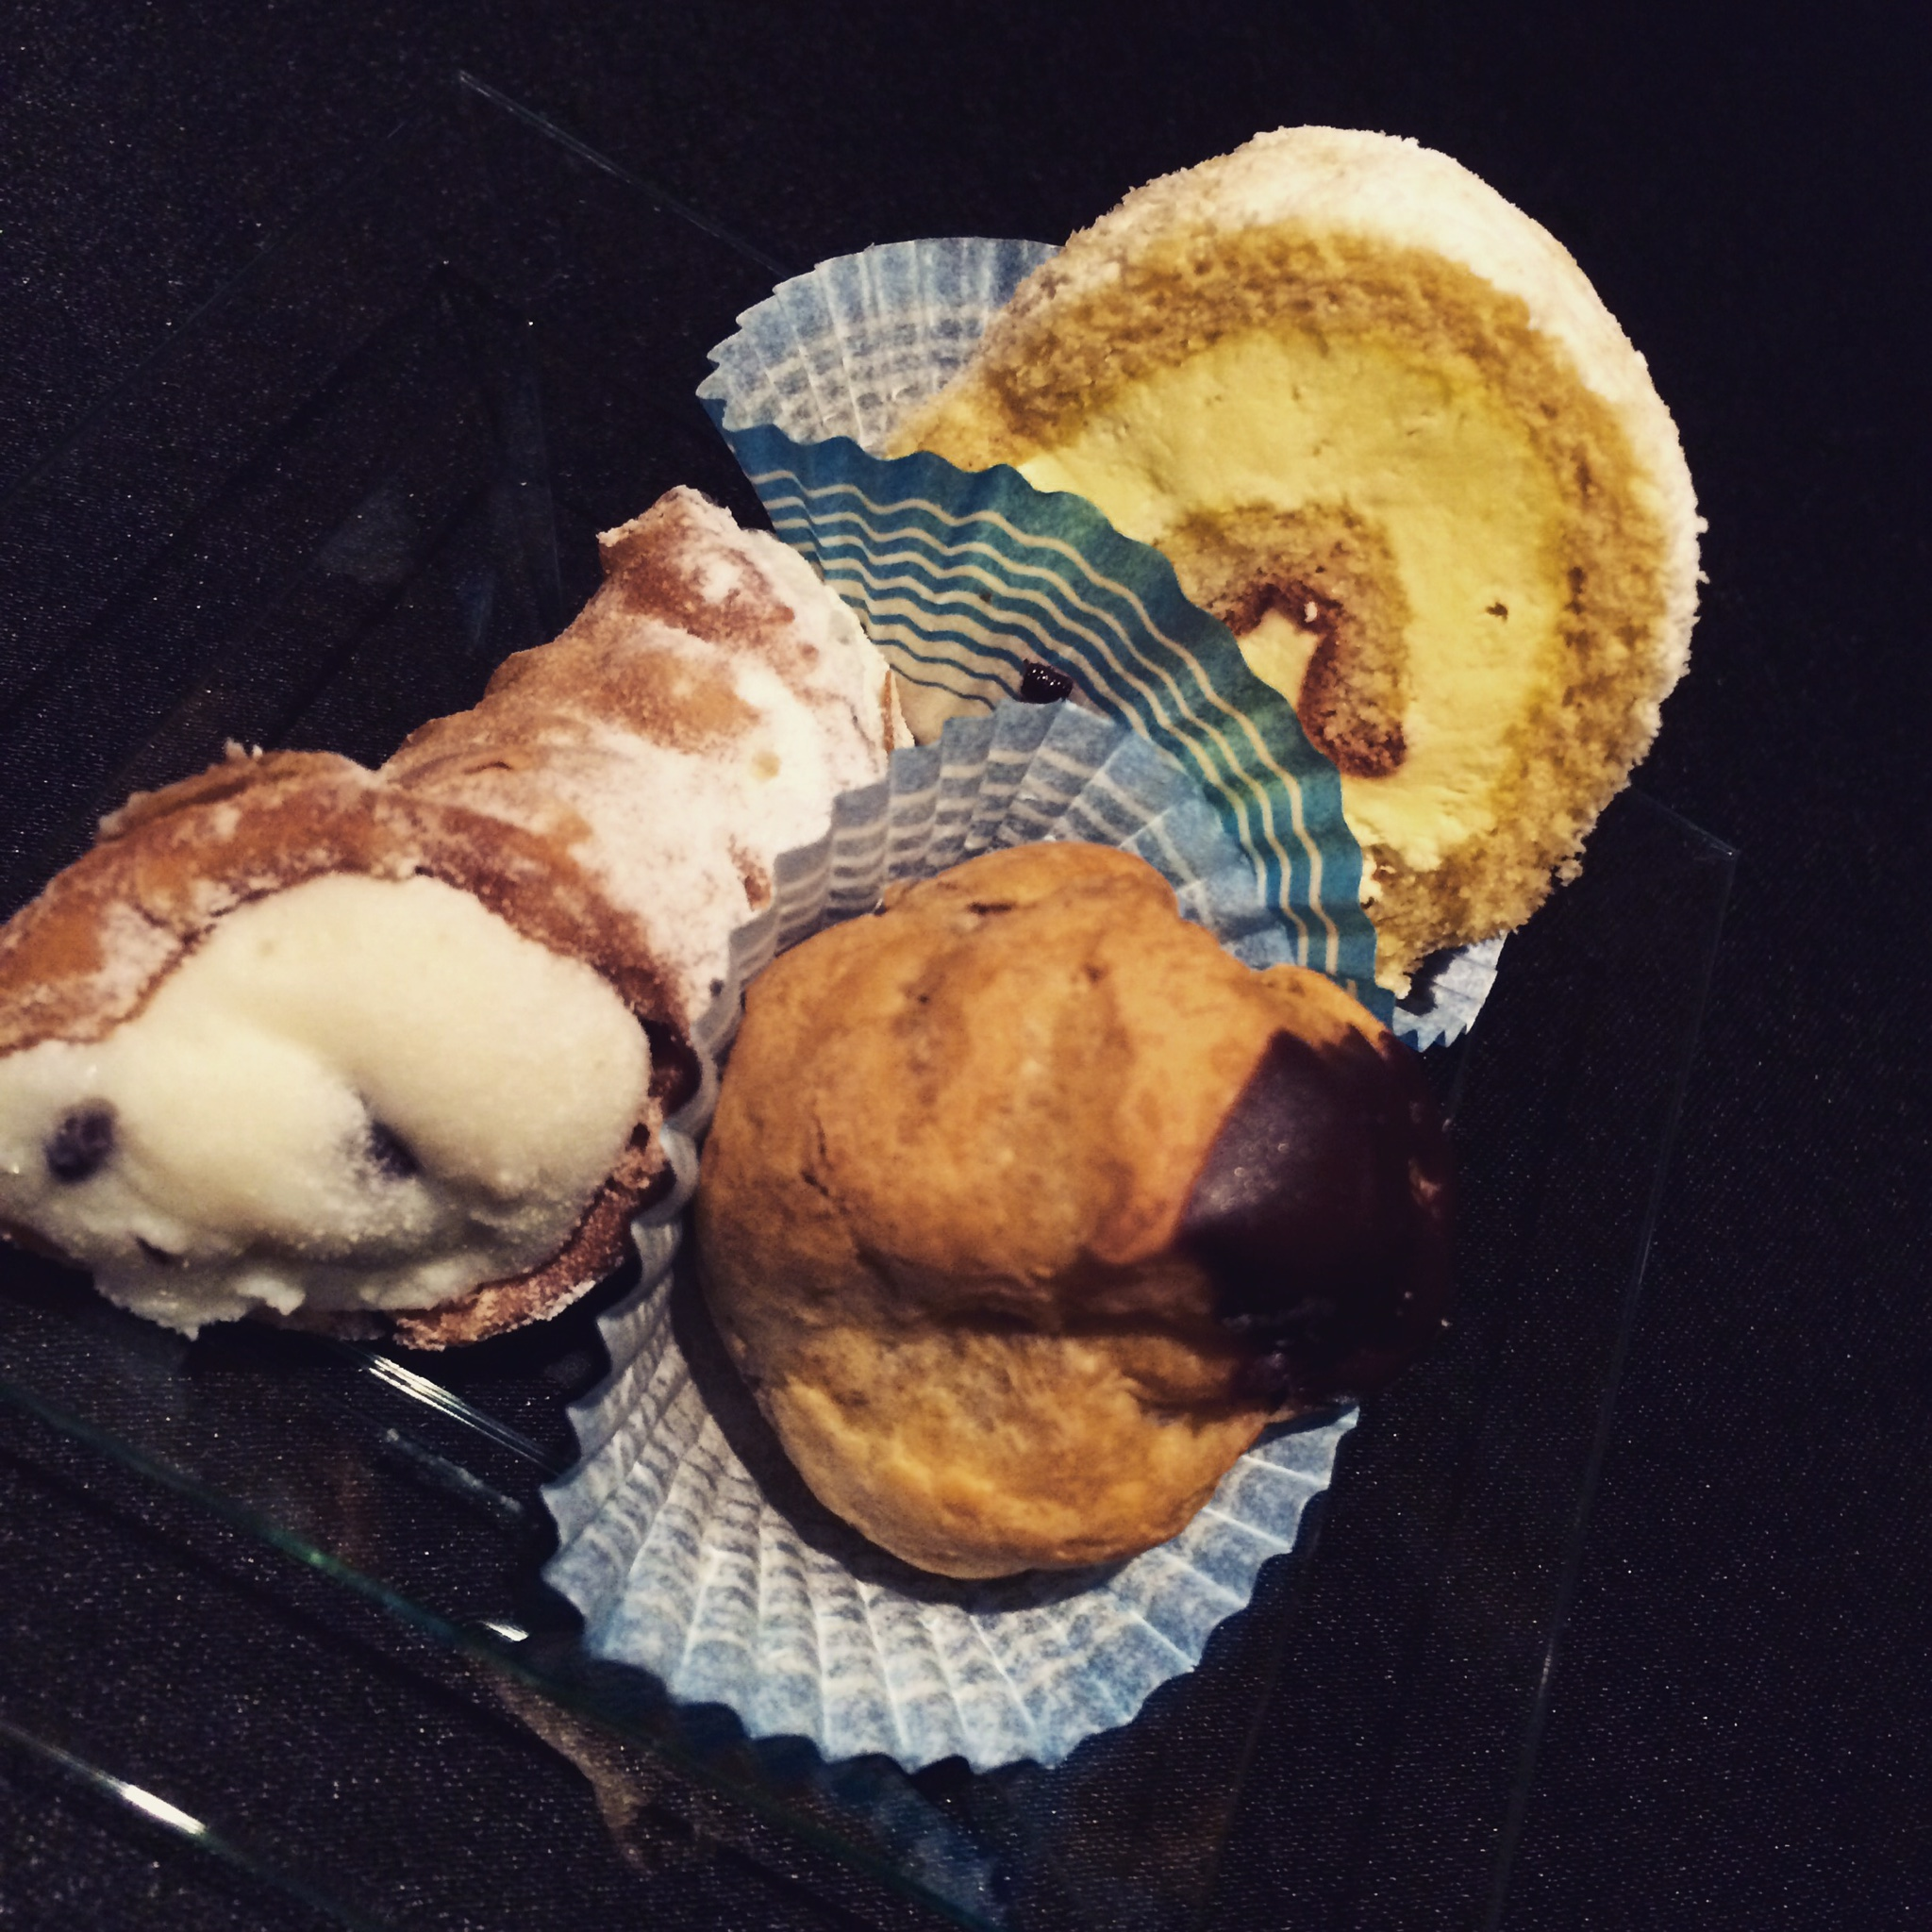 Three course dinner: cannoli; cream chocolate puffs & Italian cream cake